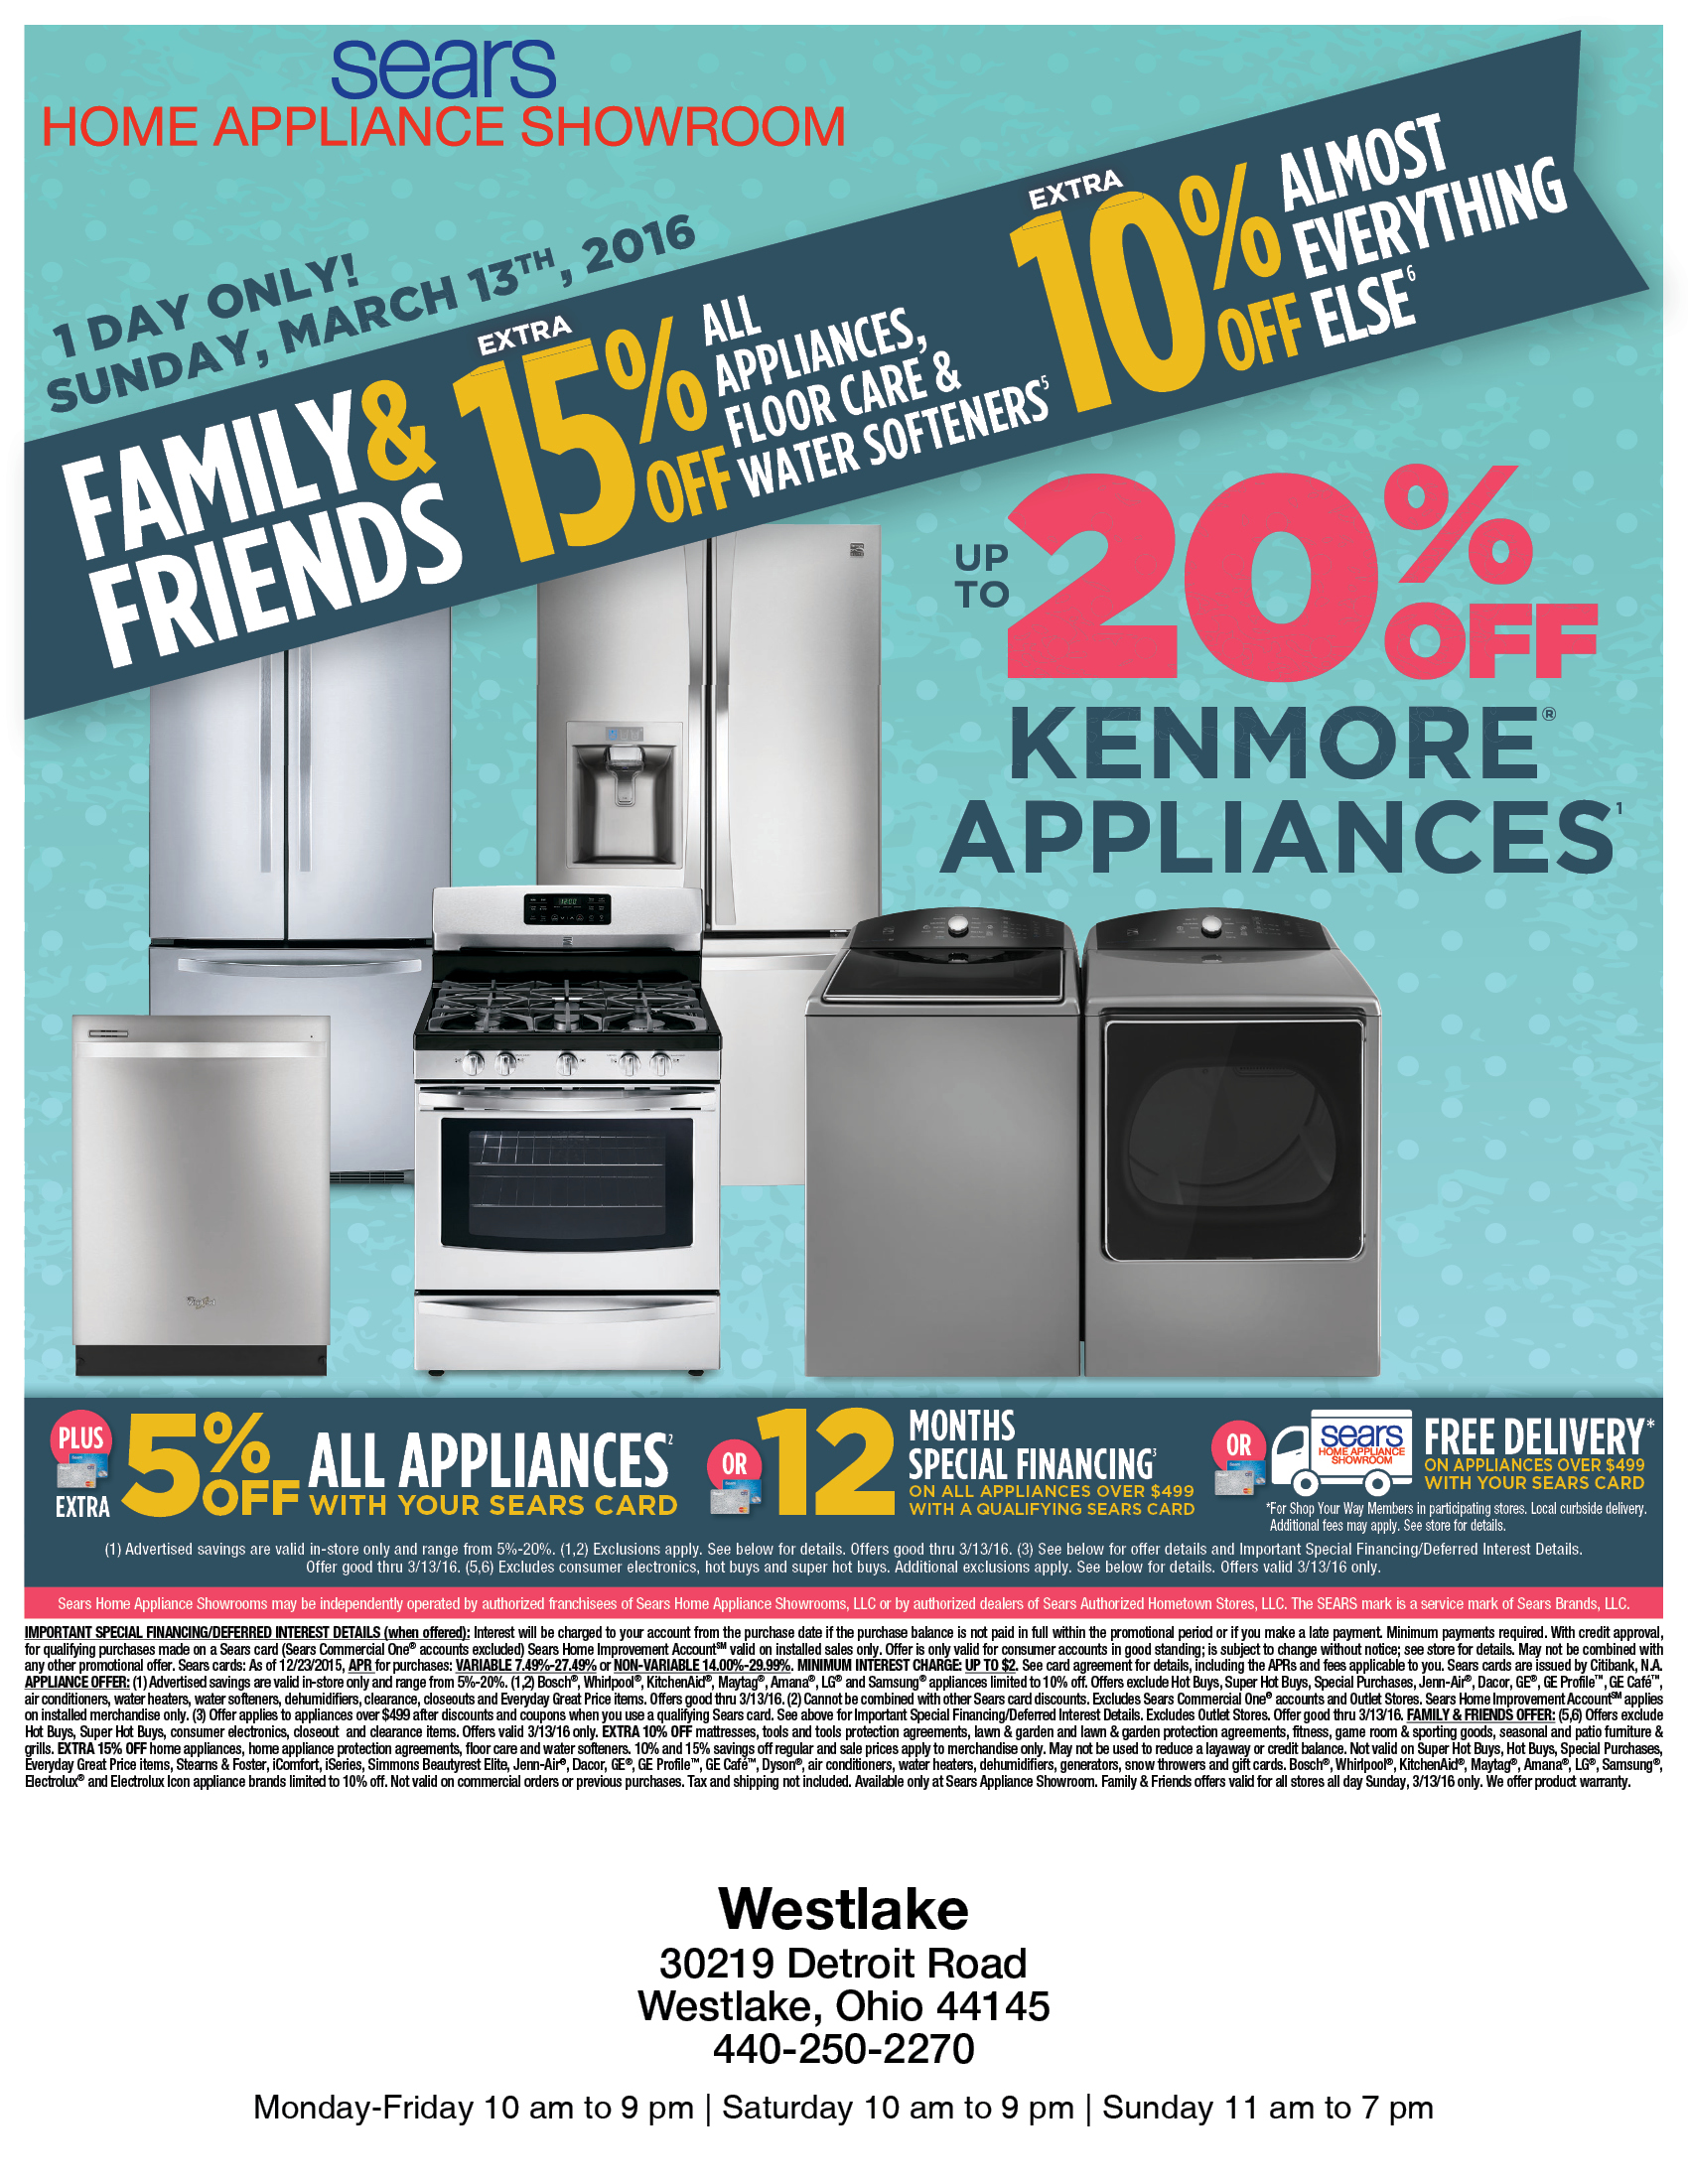 3916-SearsHomeAppliance-Ad | The Villager Newspaper Online